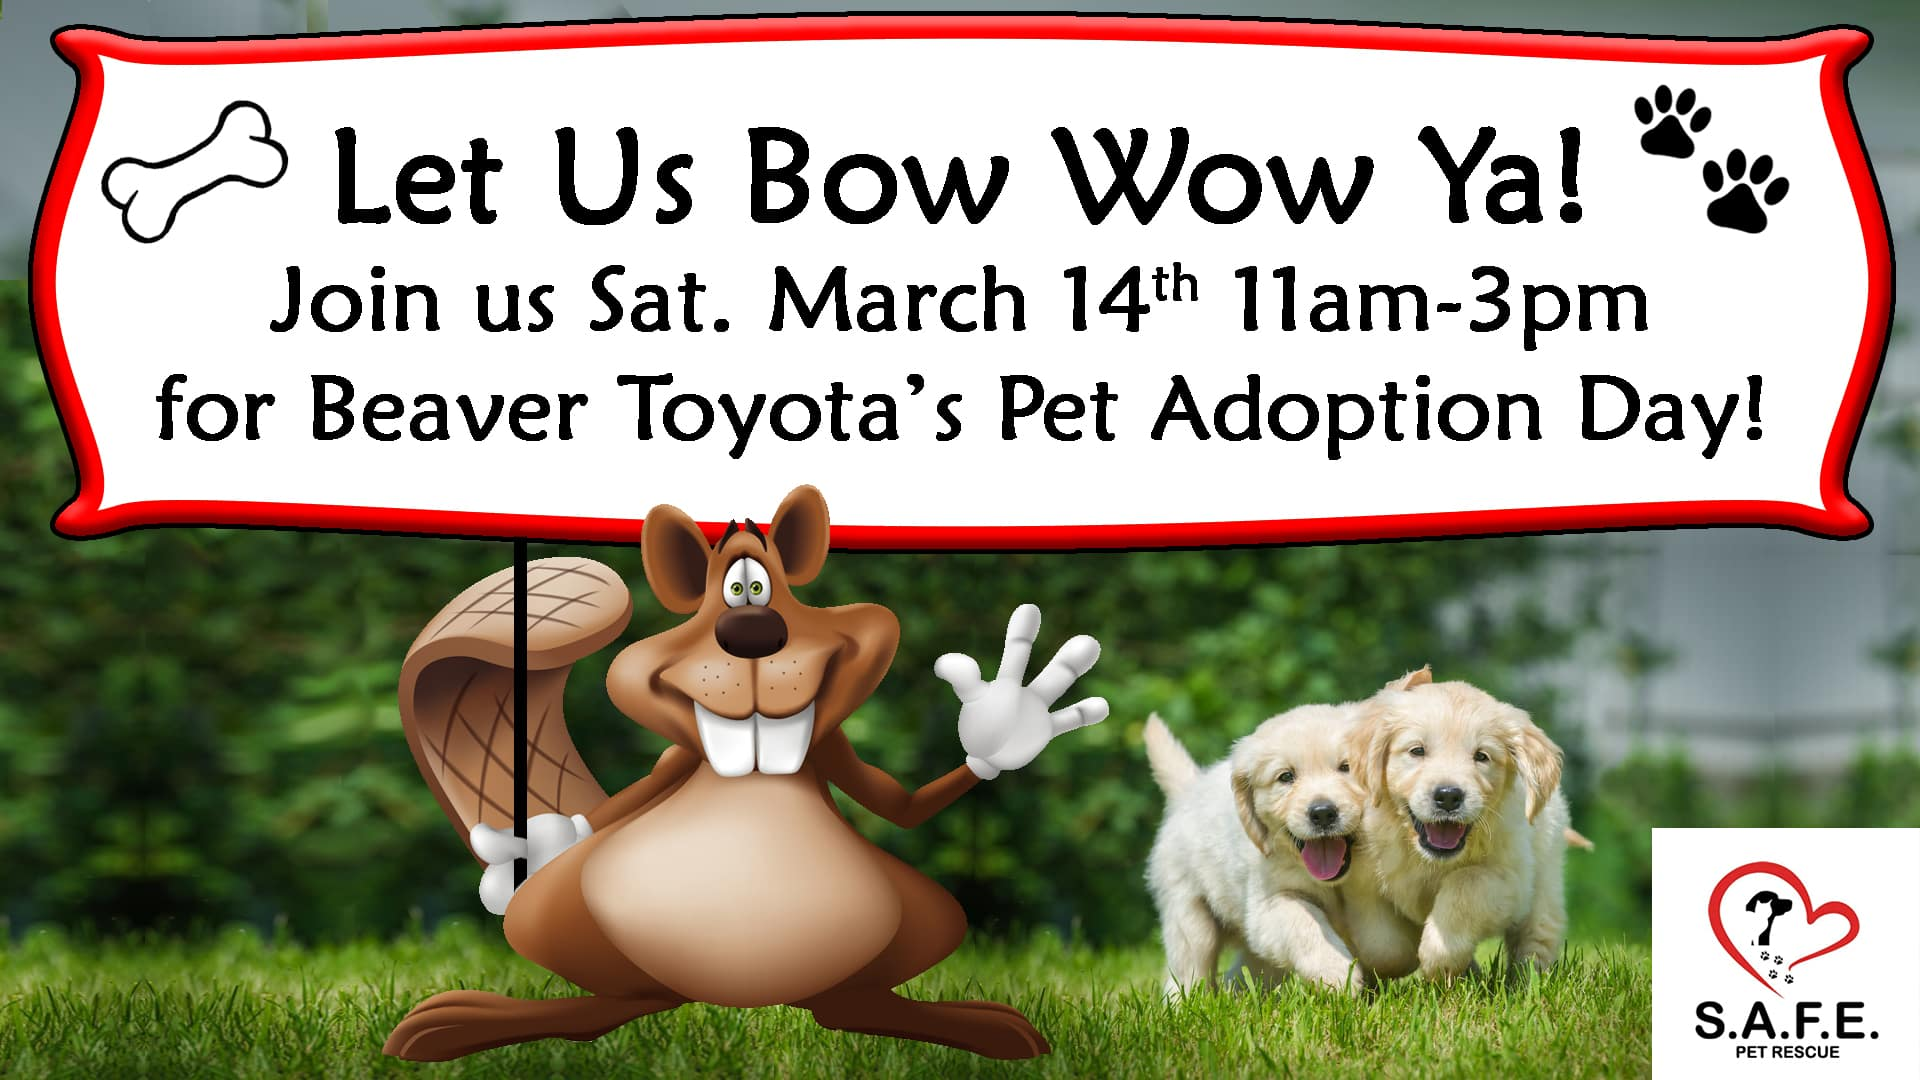 Beaver Toyota Pet Adoption